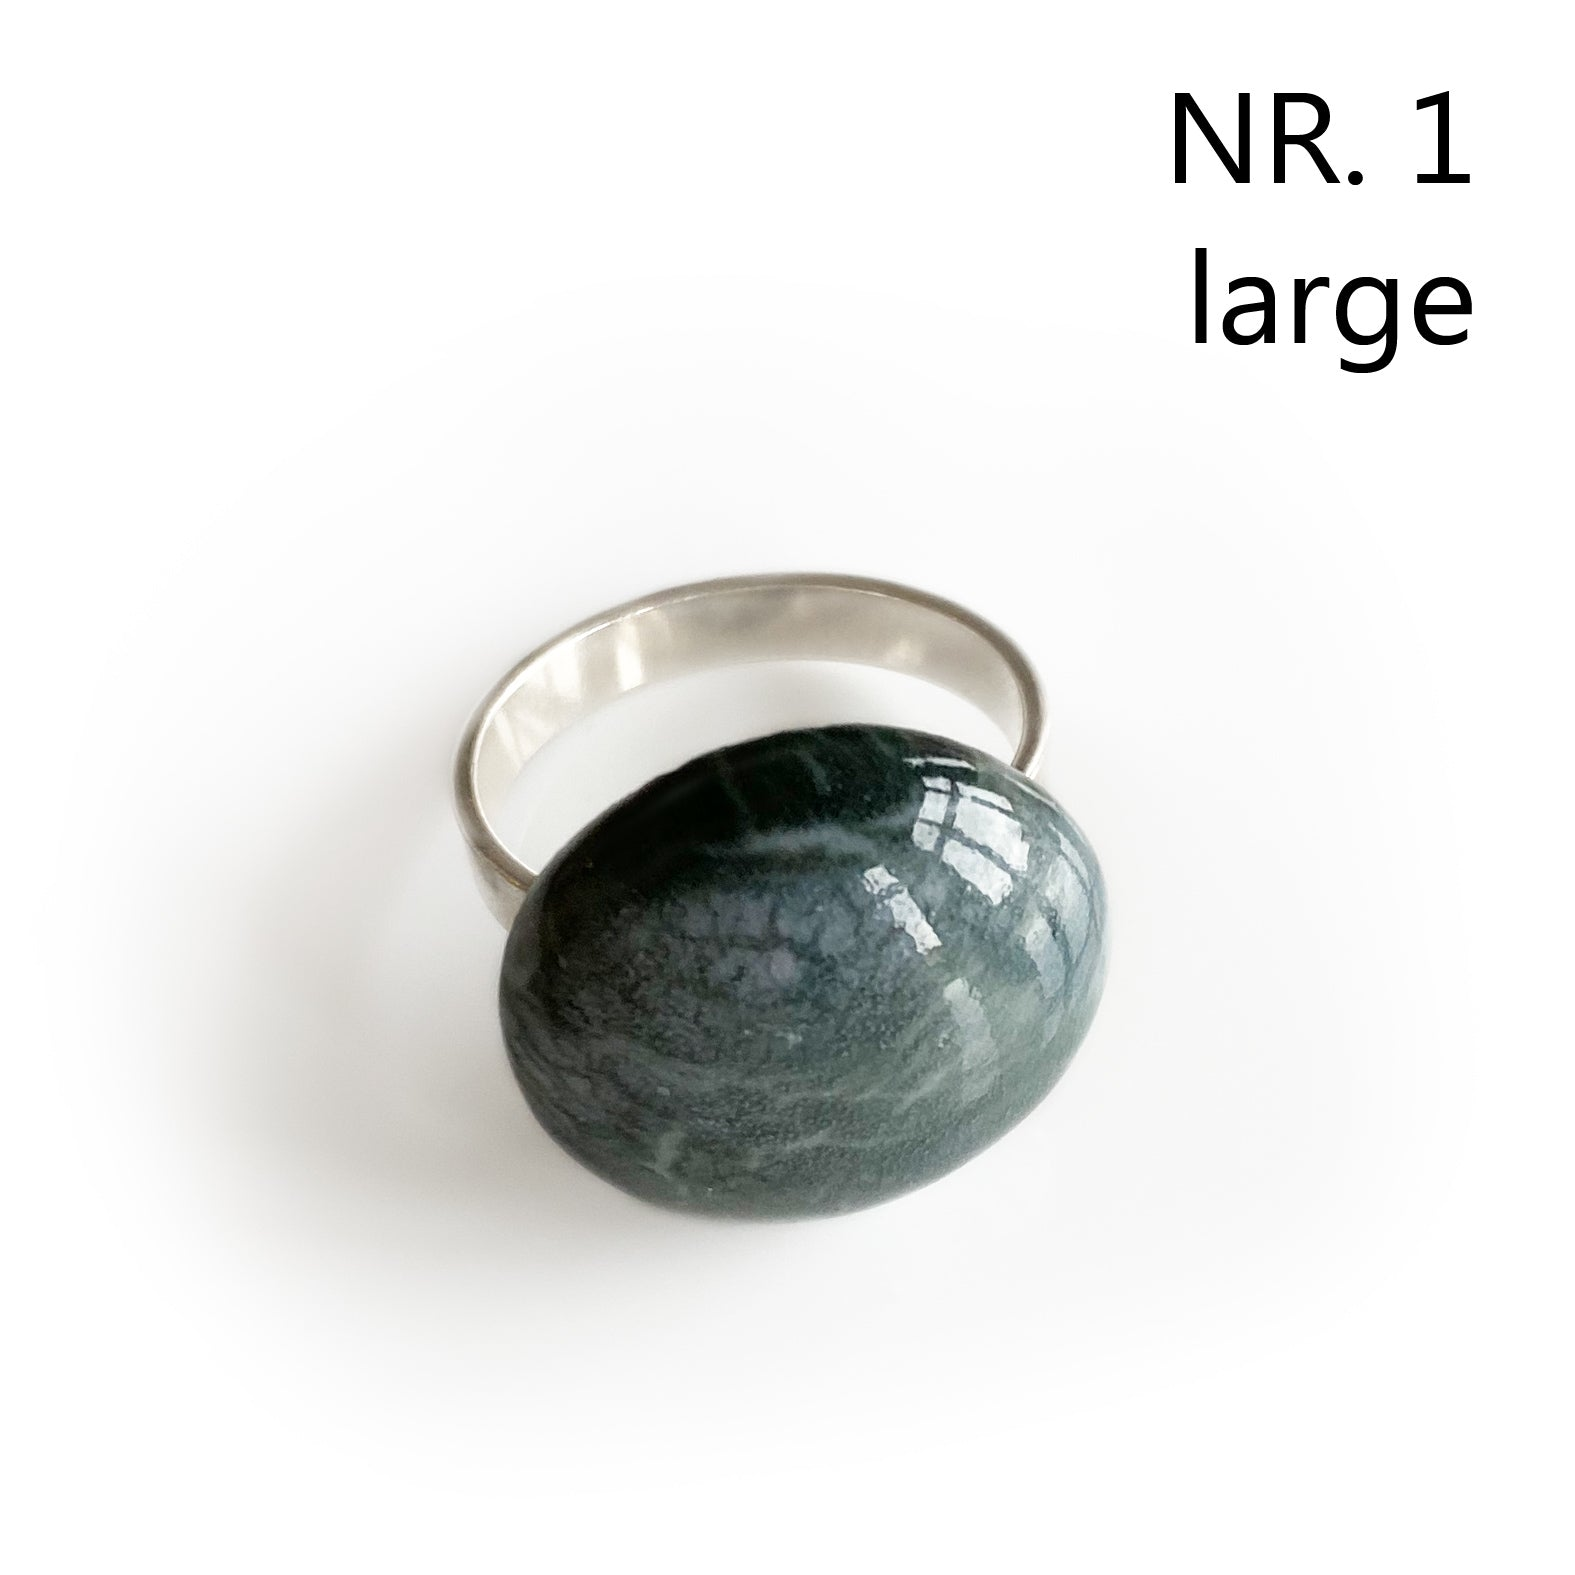 MarvelMarble - porcelæns-fingerring på Sterling sølv